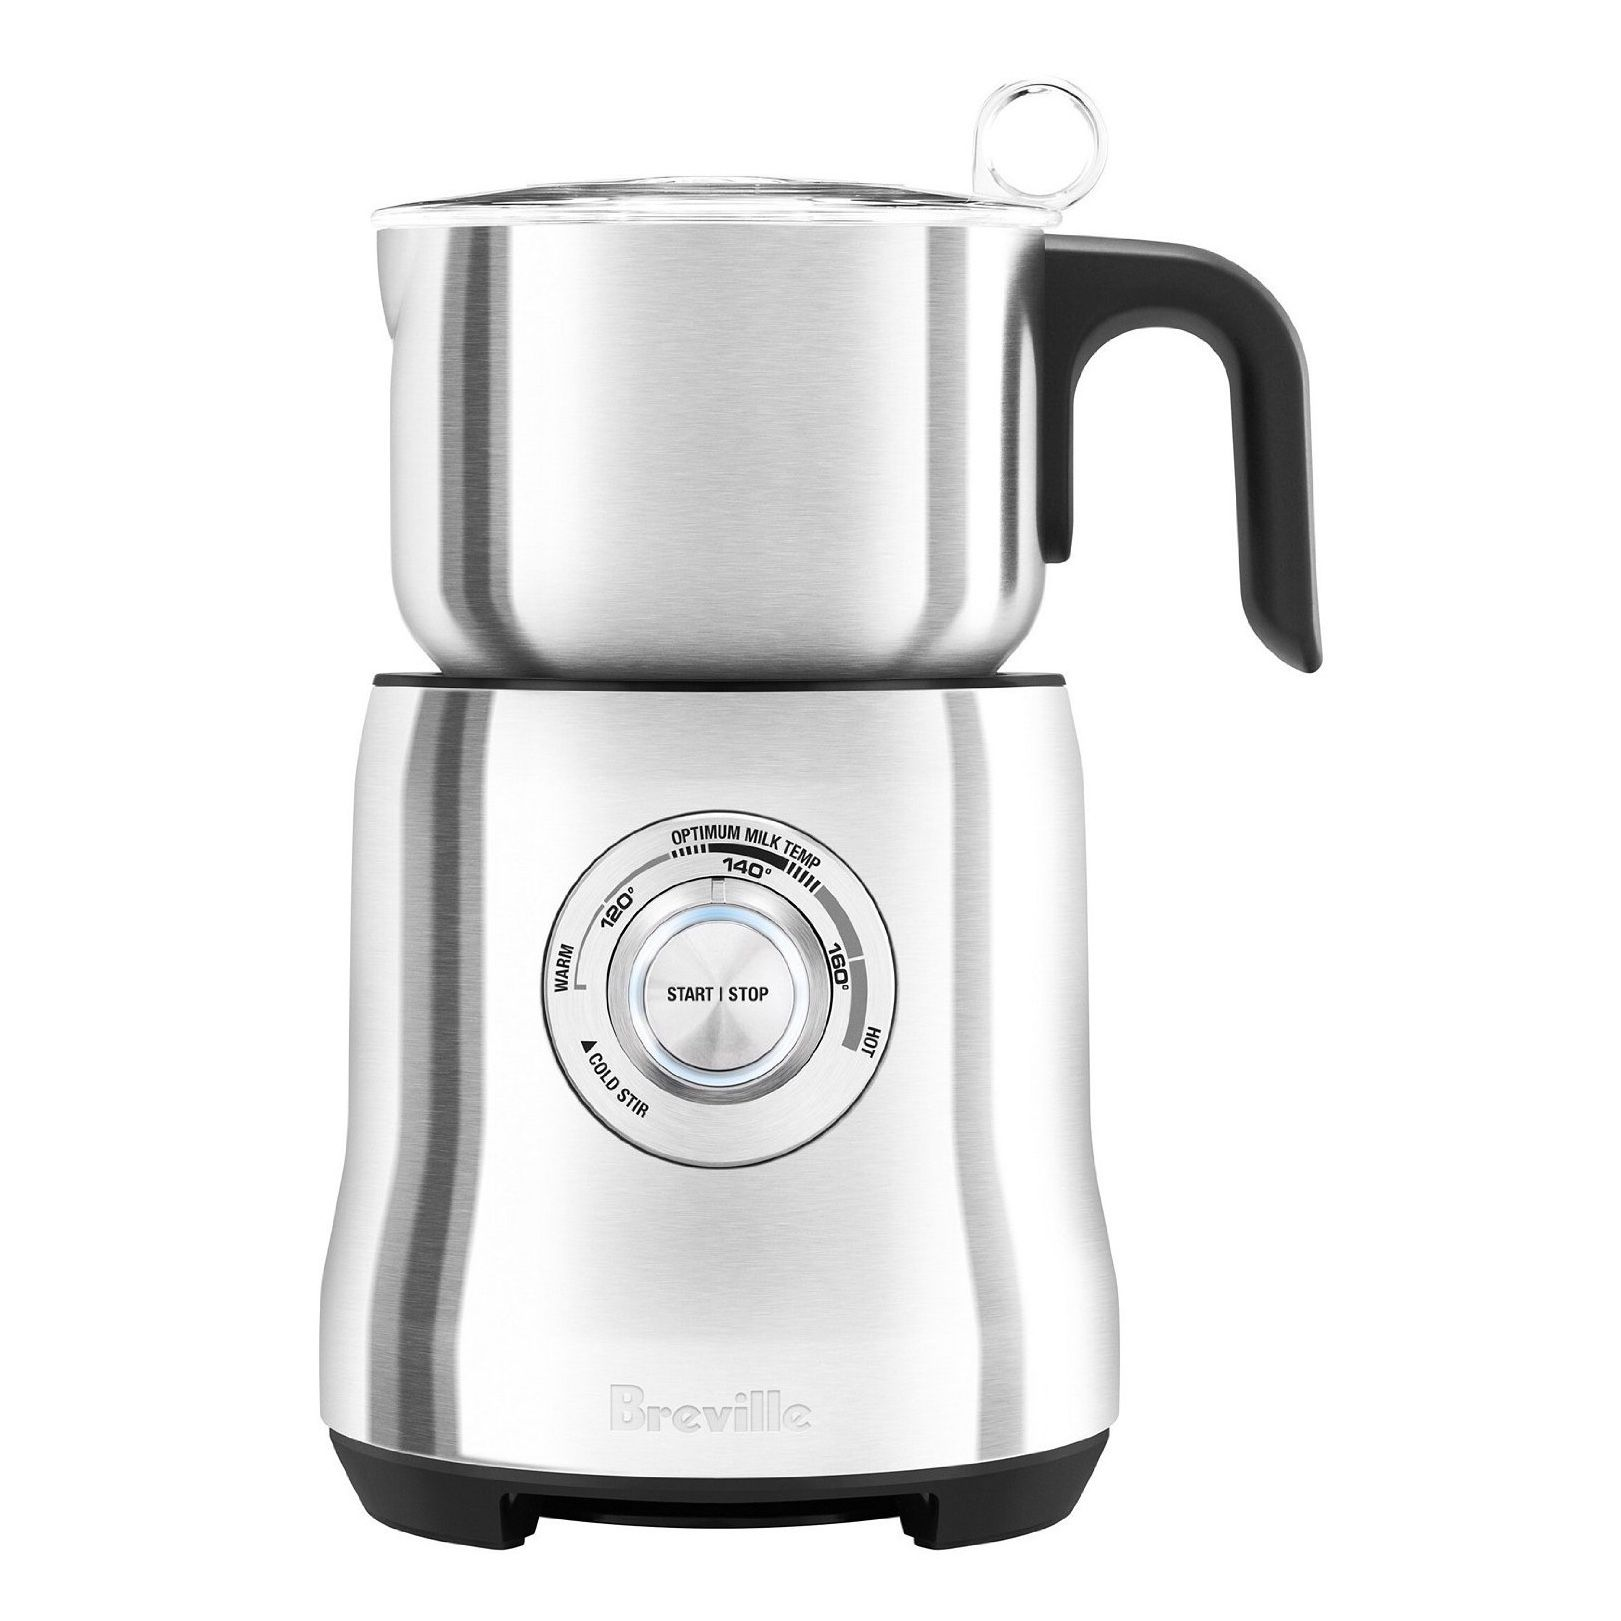 Breville BMF600XL Milk Café Frother